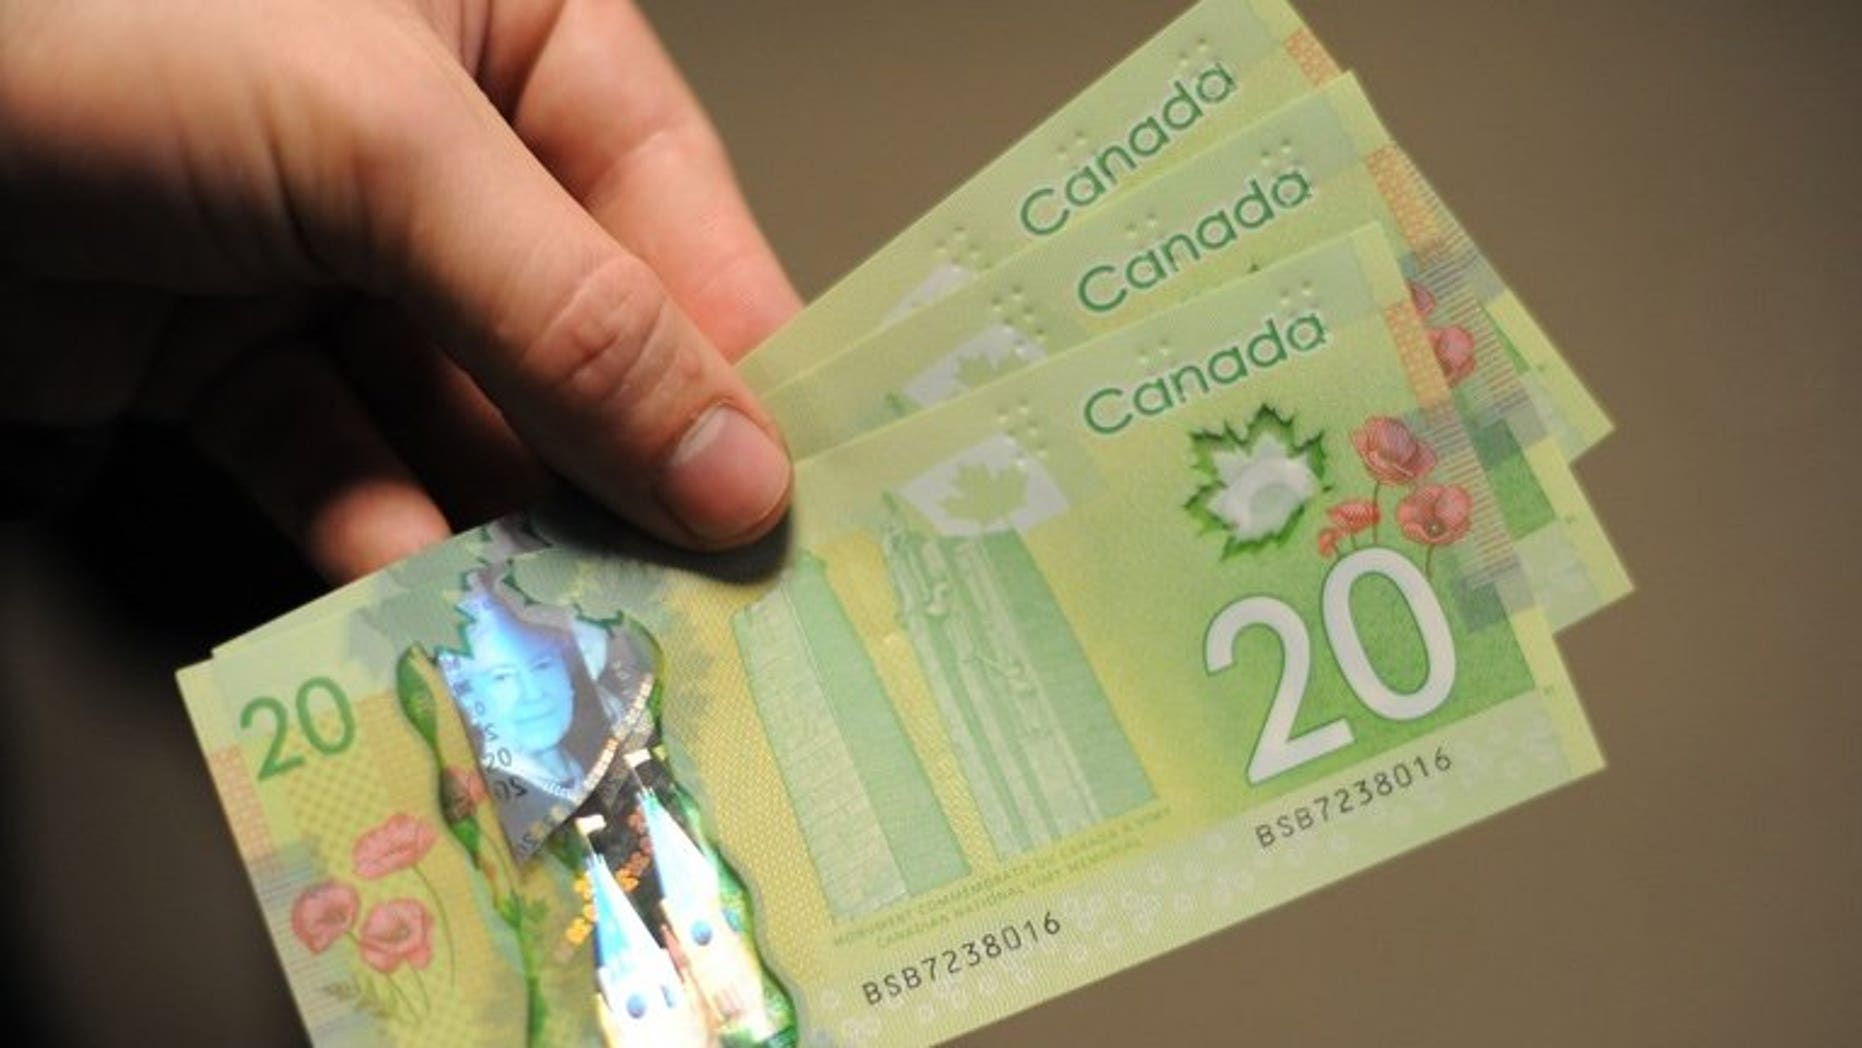 Canadian consumer prices rose 1.3 percent in July, led by higher new car and gasoline prices, the government statistical agency said Friday.